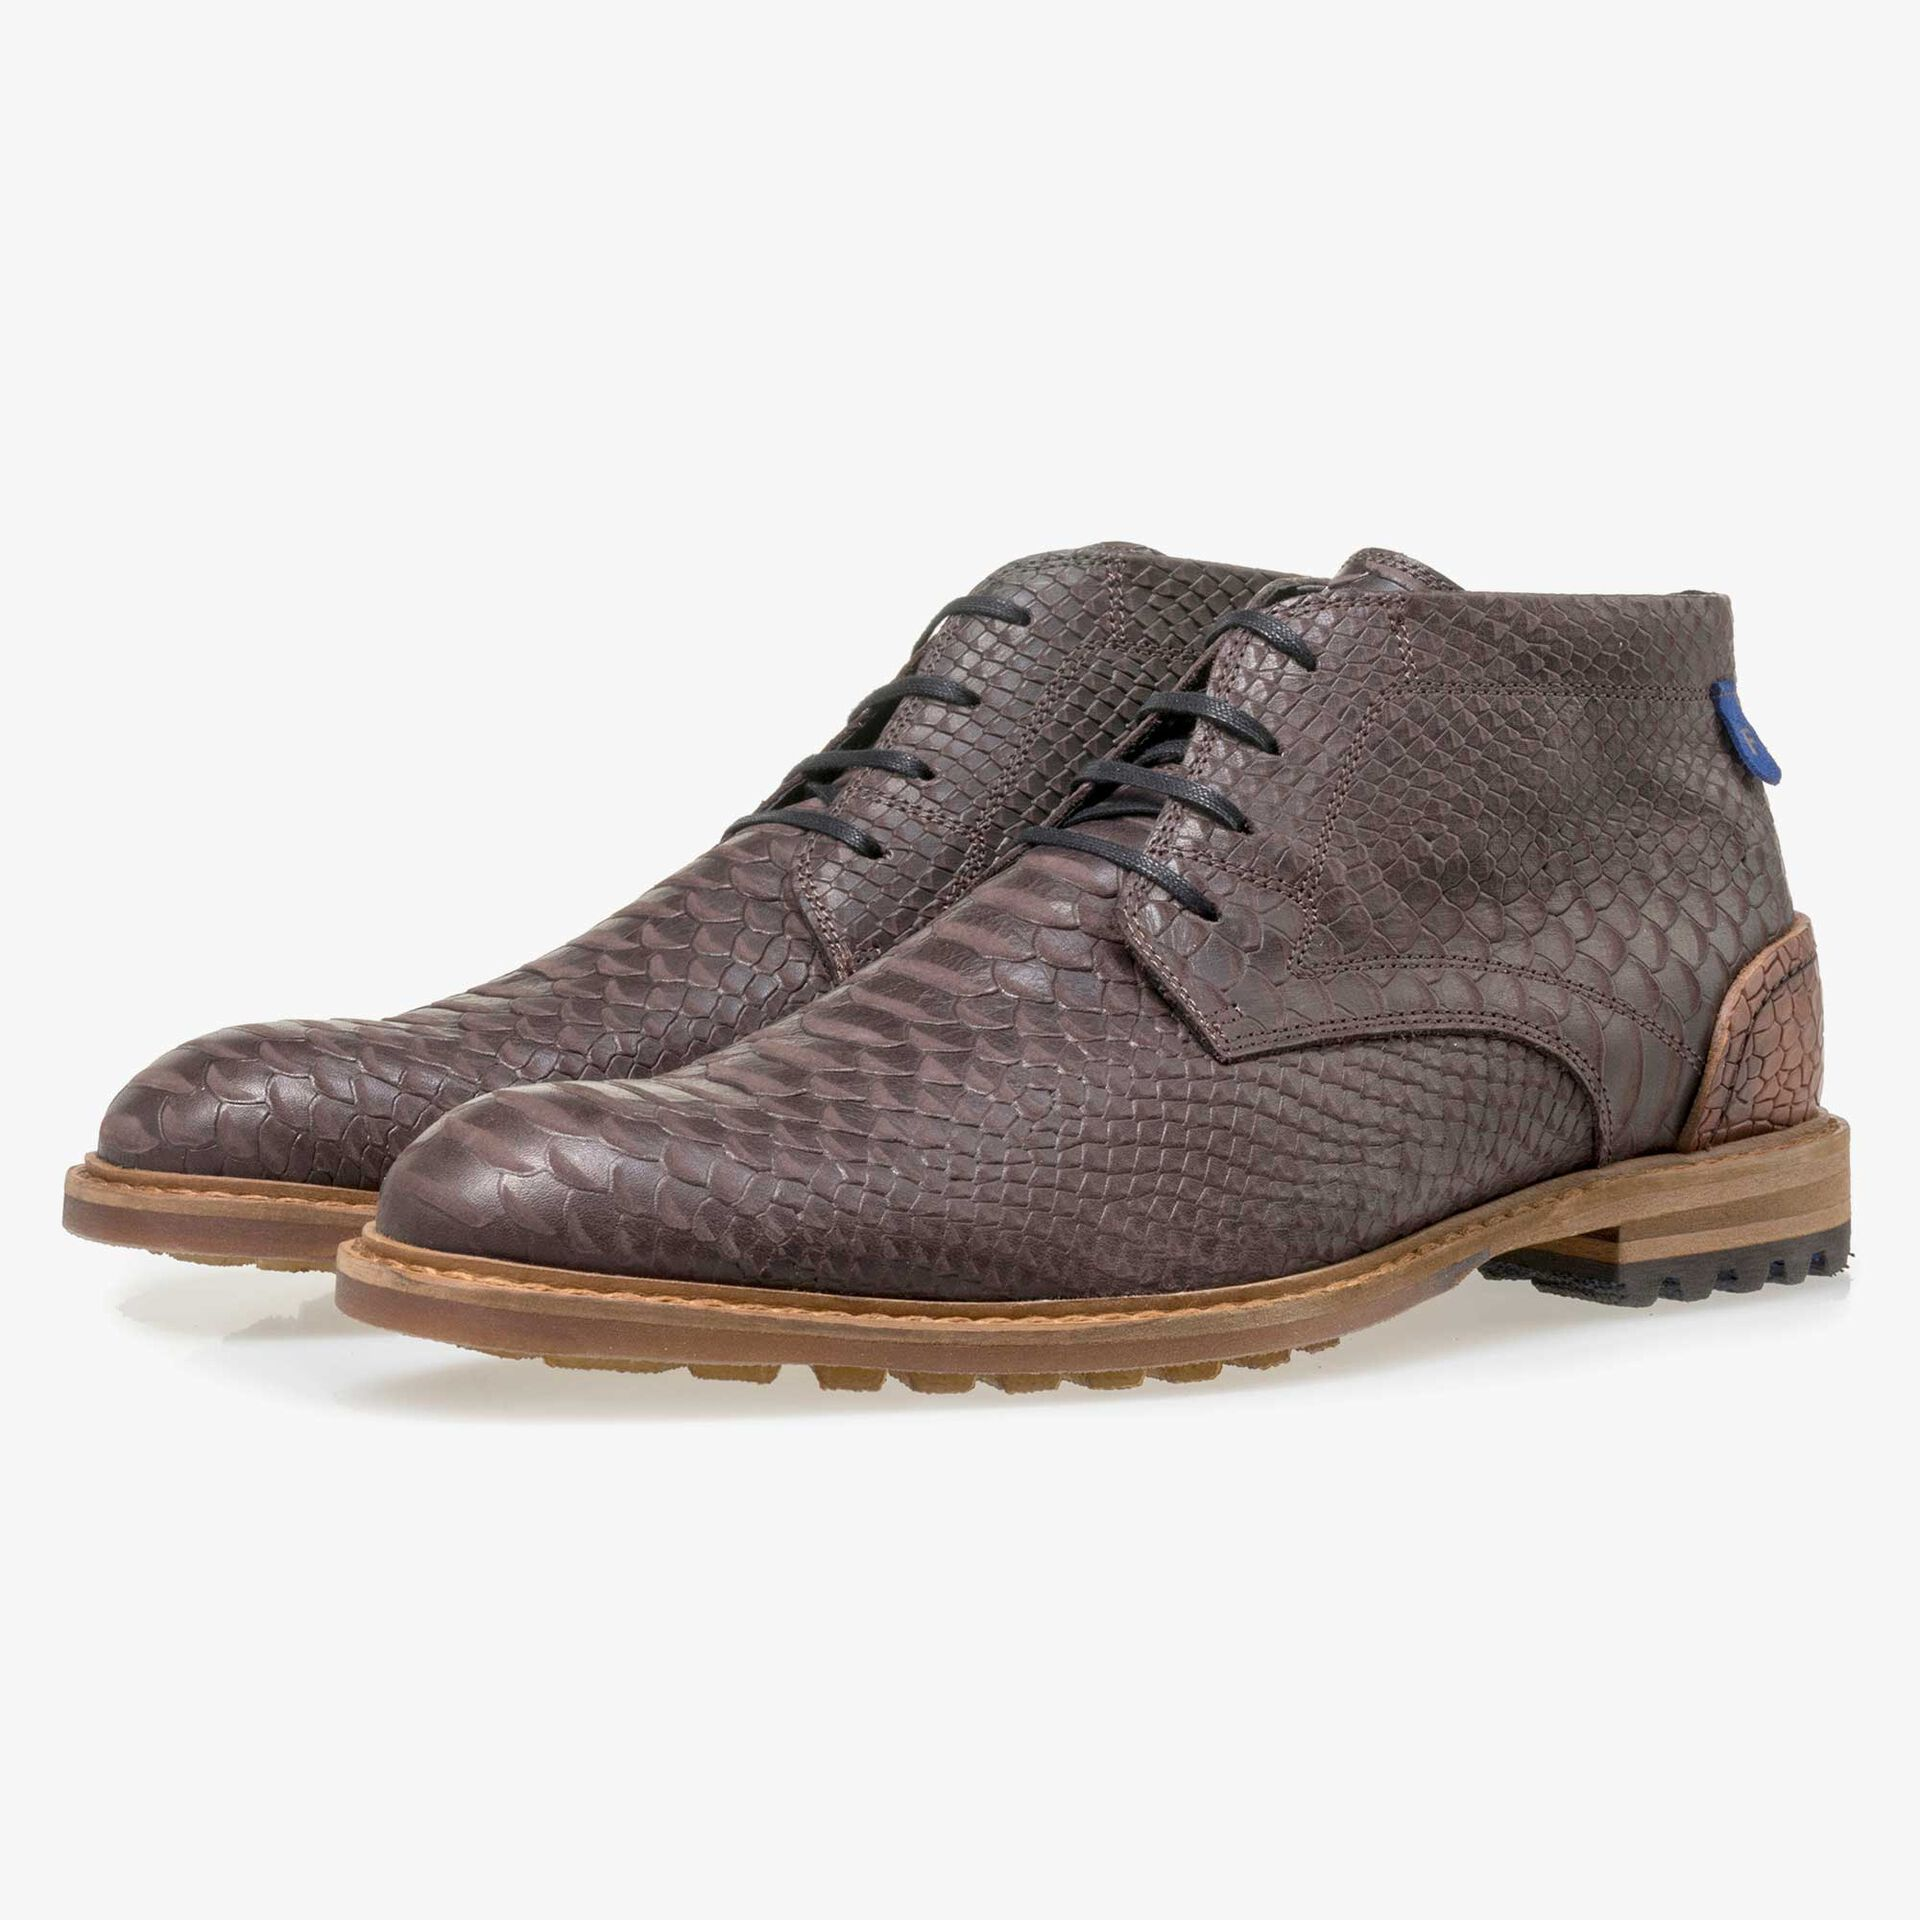 Floris van Bommel men's brown leather lace boot finished with a snake print